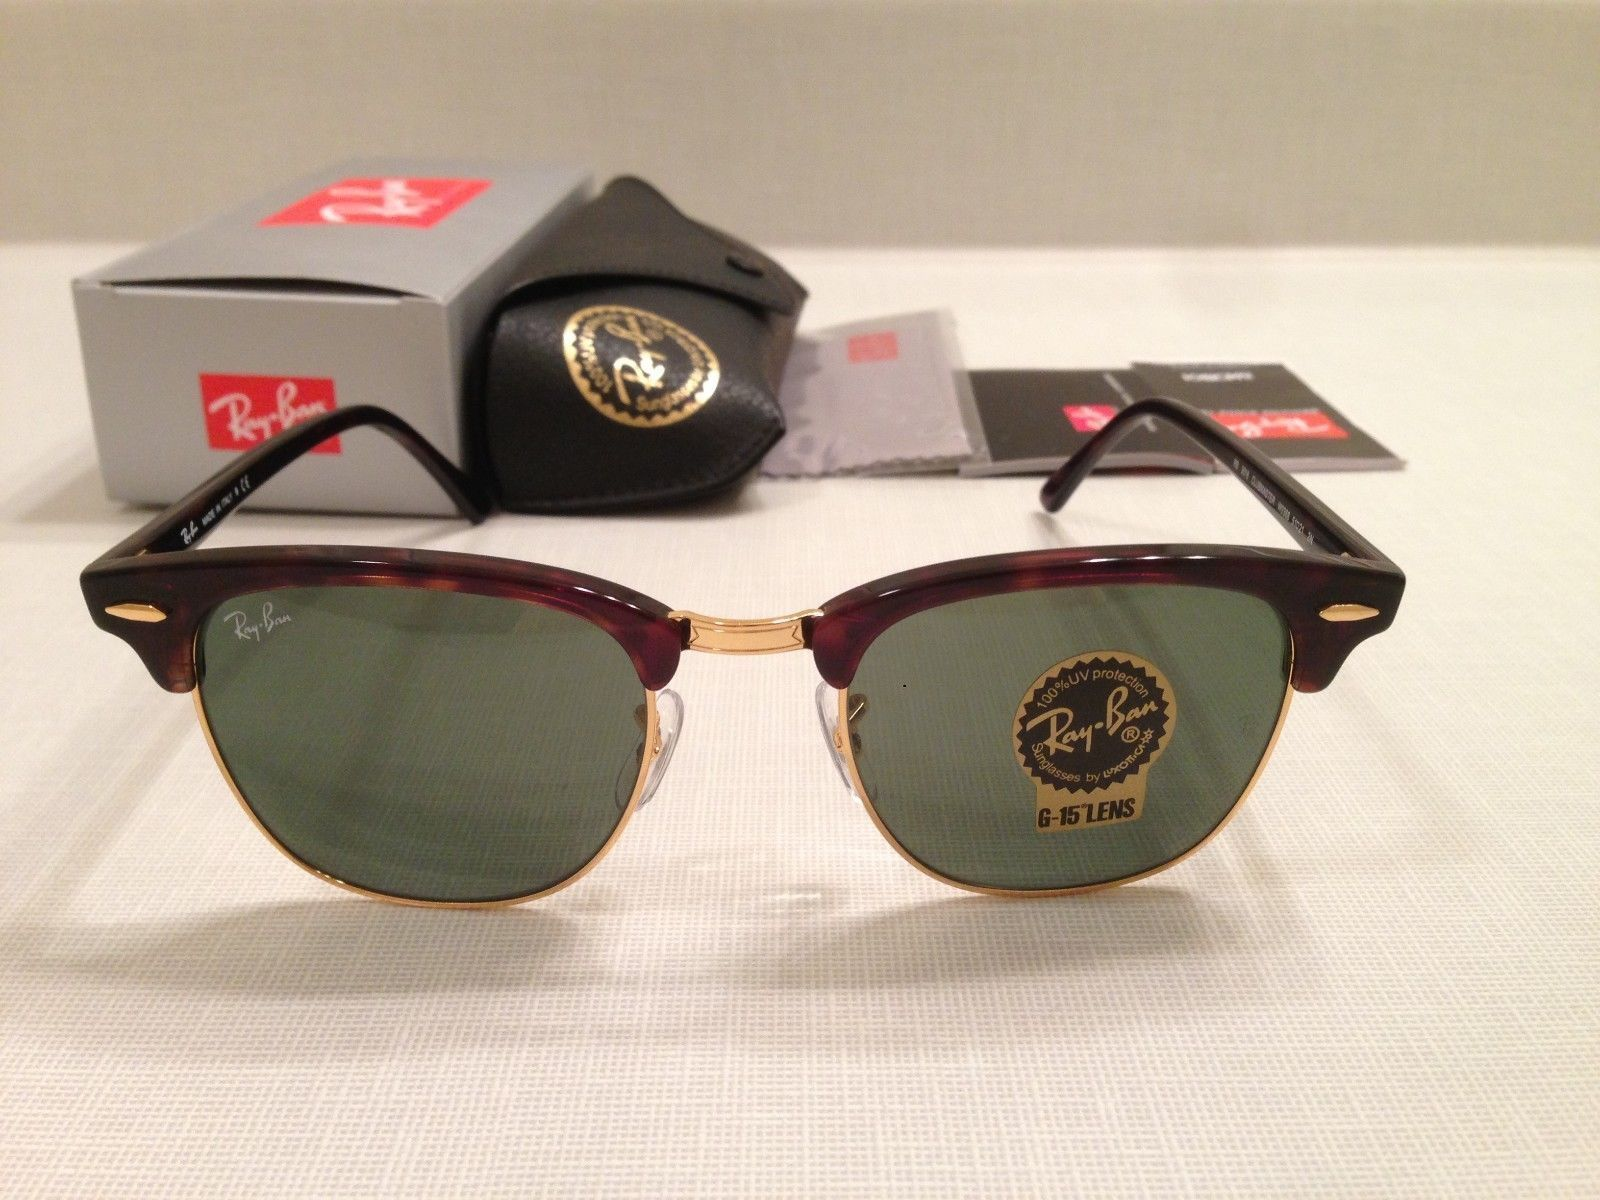 ray ban clubmaster rb3016 tortoise havana gold frame sunglasses w0366 51mm